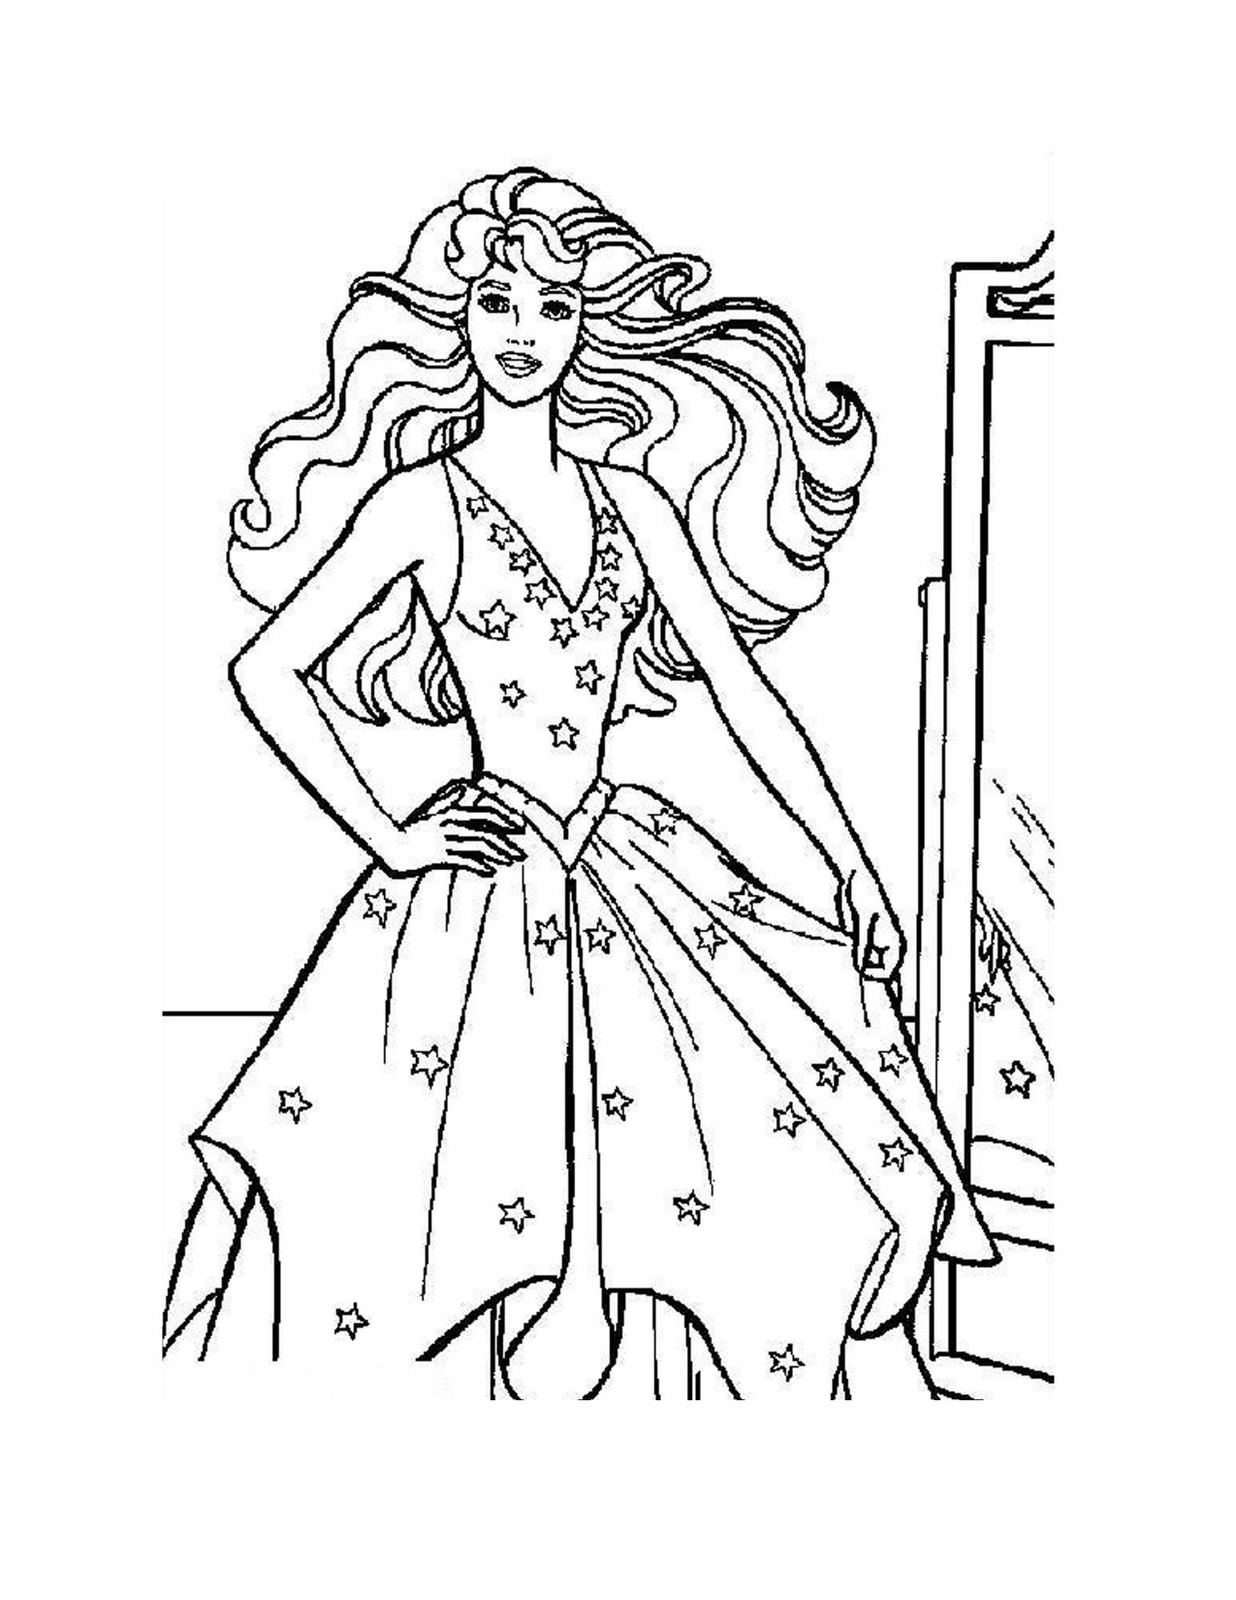 Free Printable Disney Princess Coloring Pages For Kids - Free Printable Princess Coloring Pages